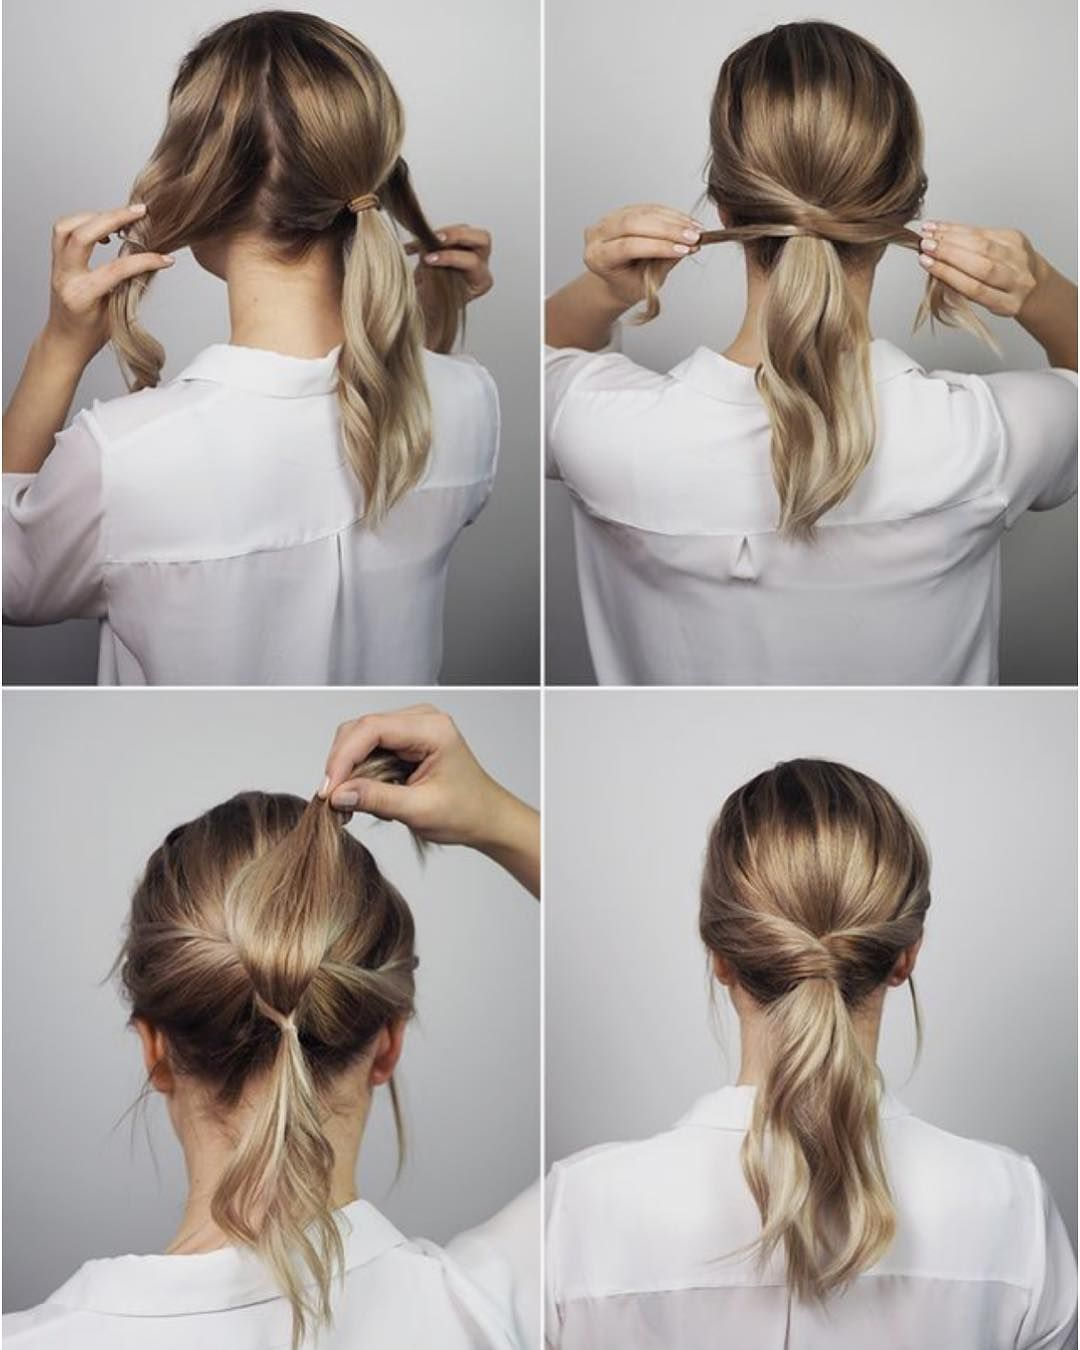 10 Easy Hairstyles For Long Hair To Do At Home Step By Step Hey Cinderella Hair Styles Medium Hair Styles Office Hairstyles